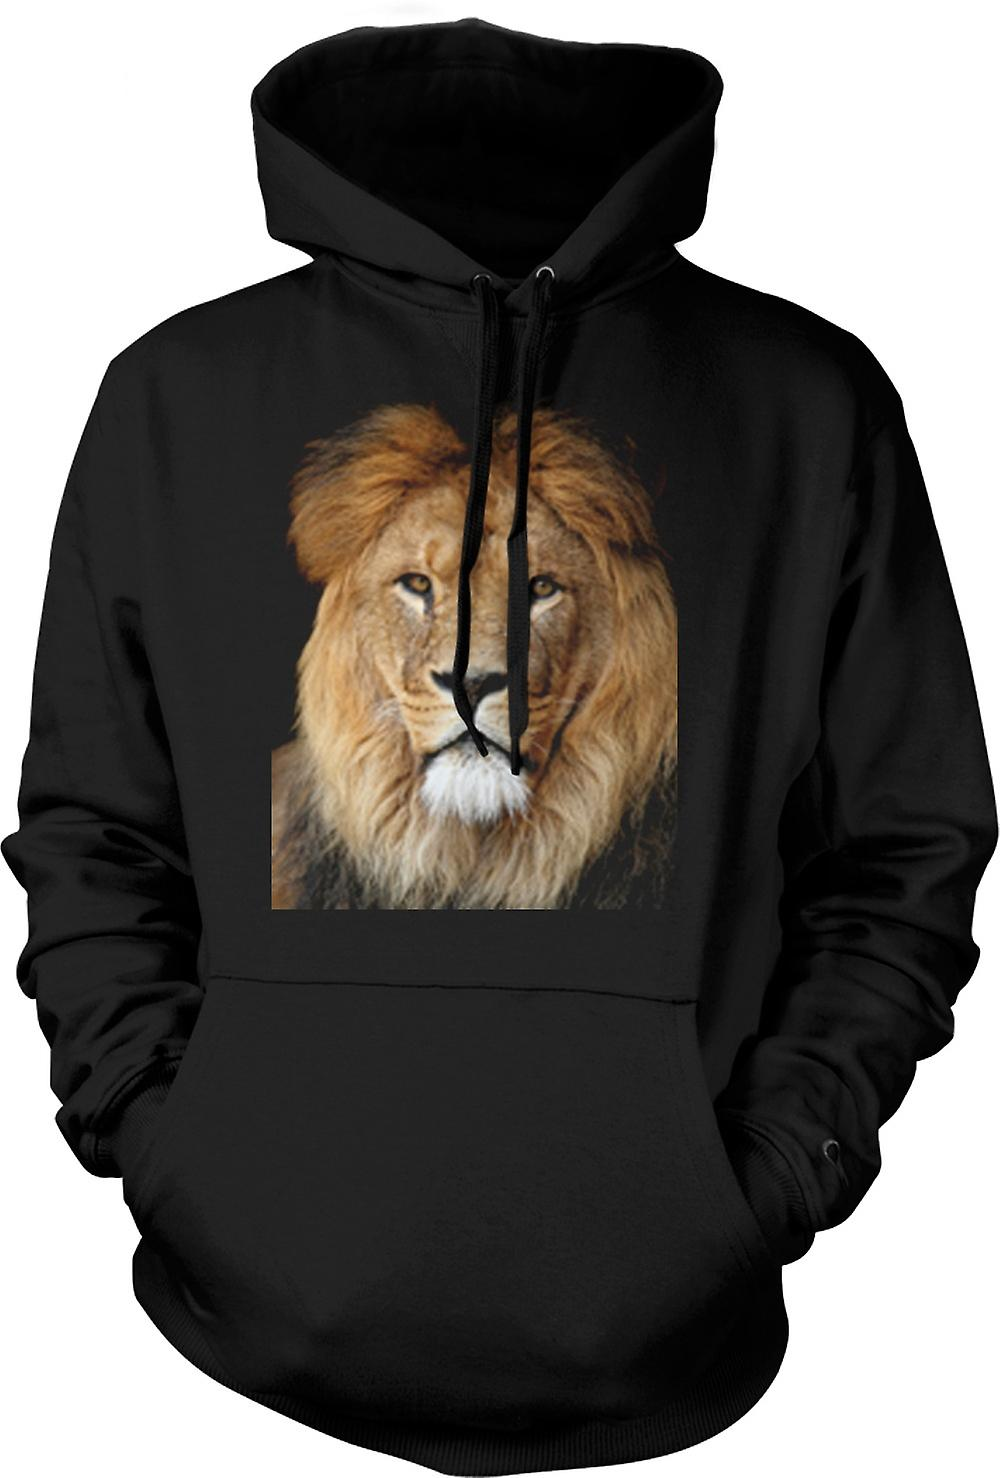 Kids Hoodie - Lion Colour Portrait